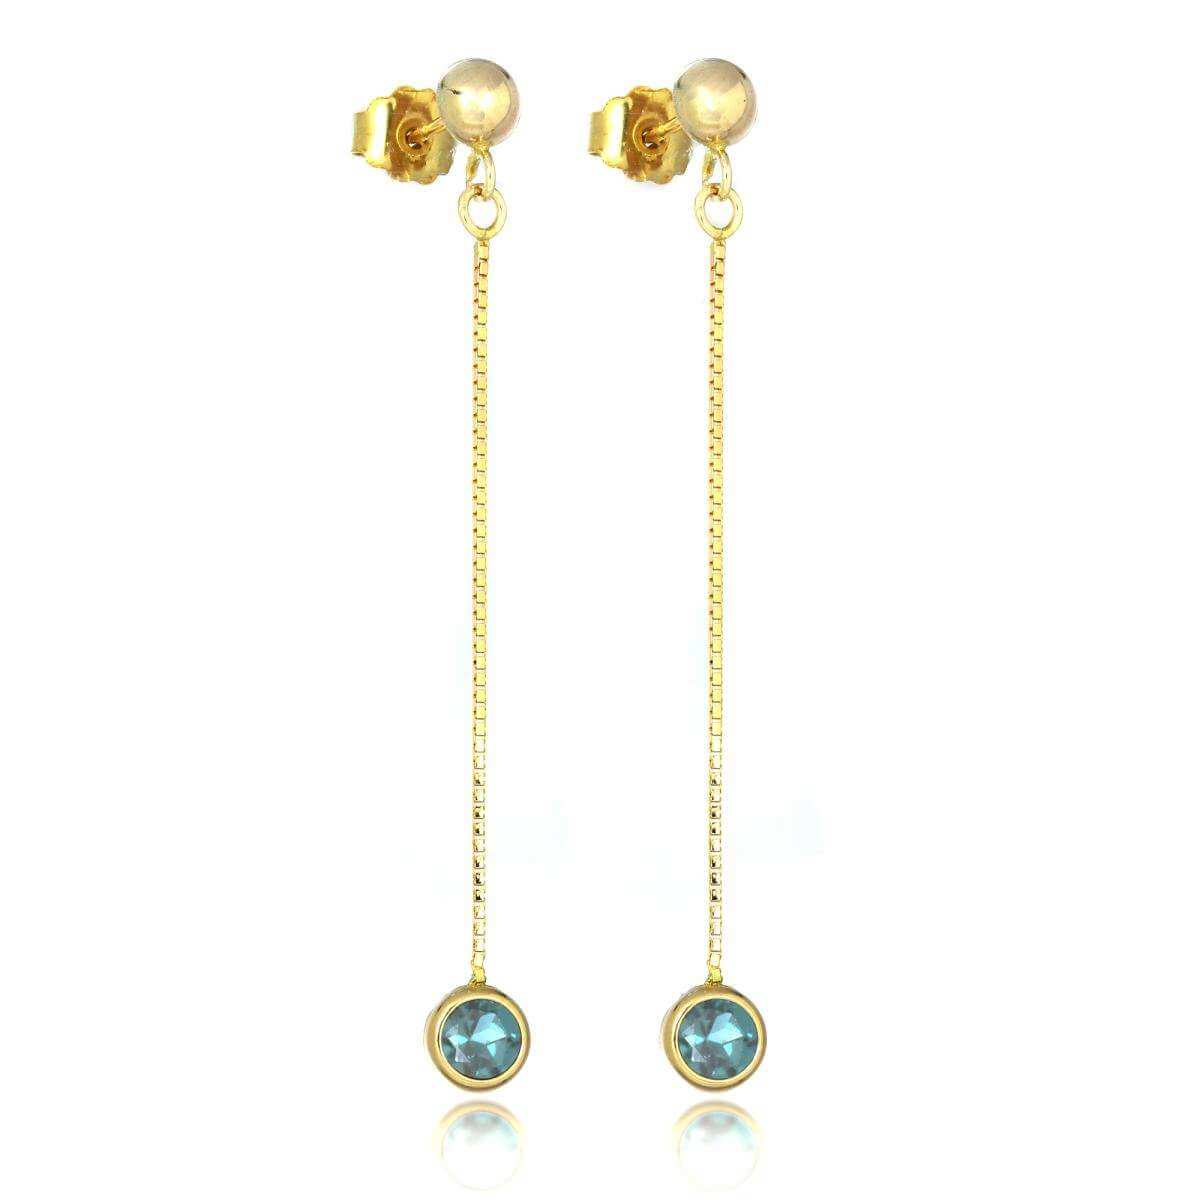 9ct Gold & 4mm Round Gemstone Drop Stud Earrings Sky Blue Topaz